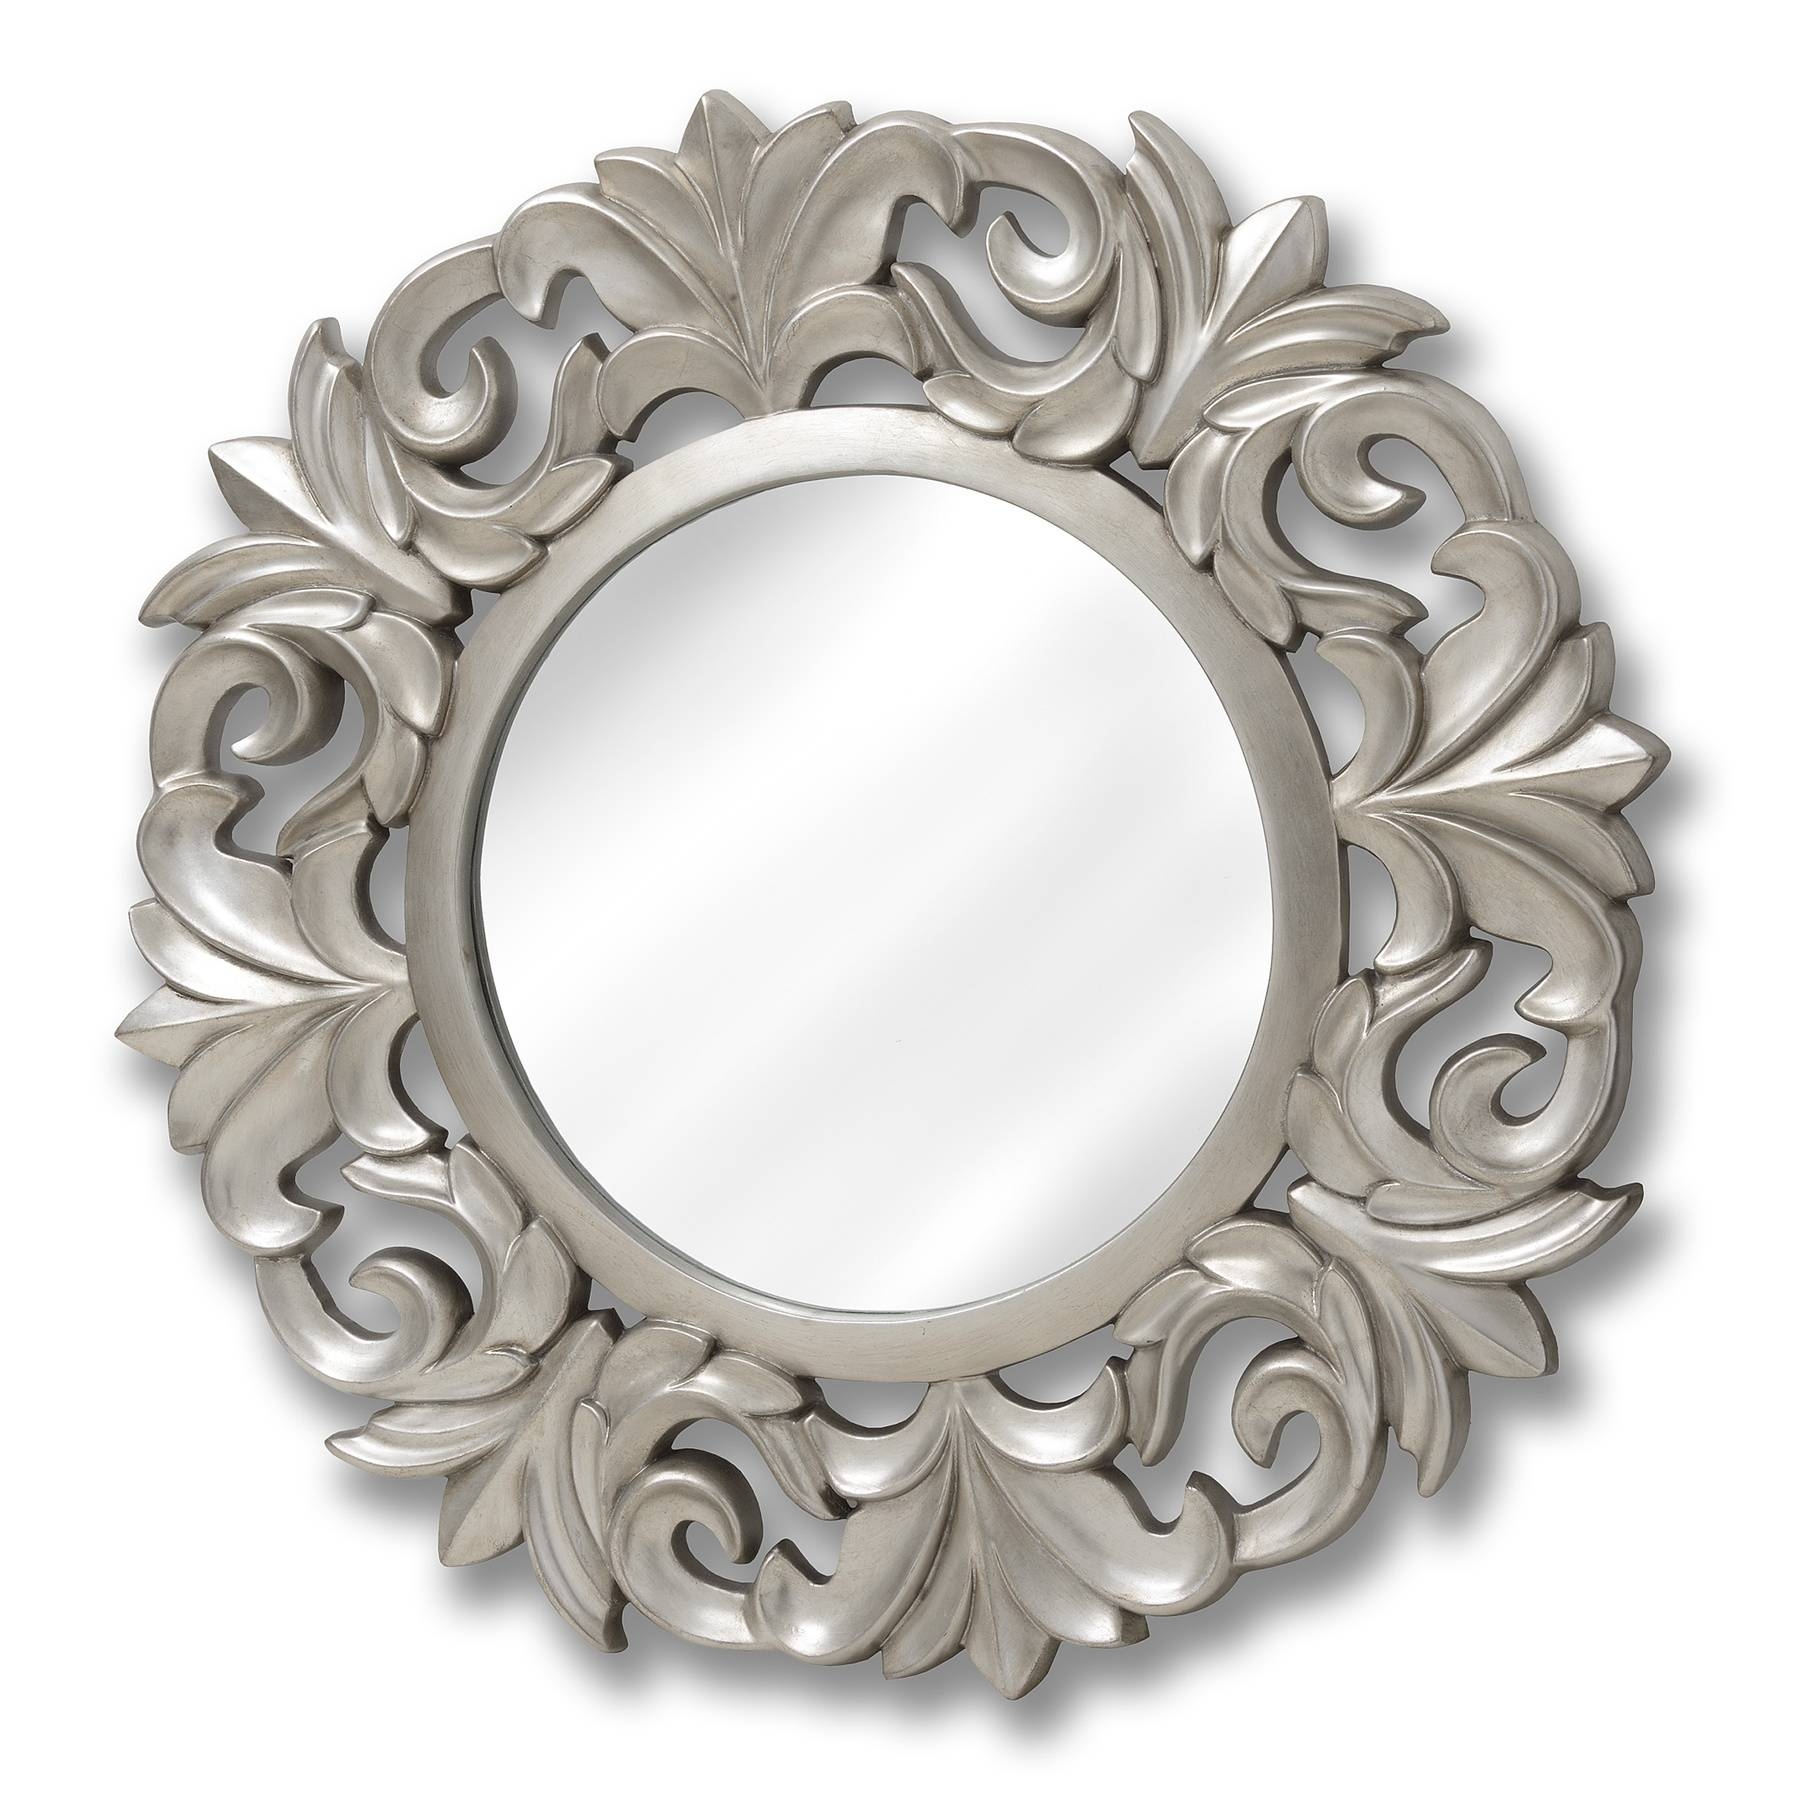 Baroque Style Round Silver Mirror | Happy Home Interiors Inside Baroque Style Mirrors (View 8 of 25)